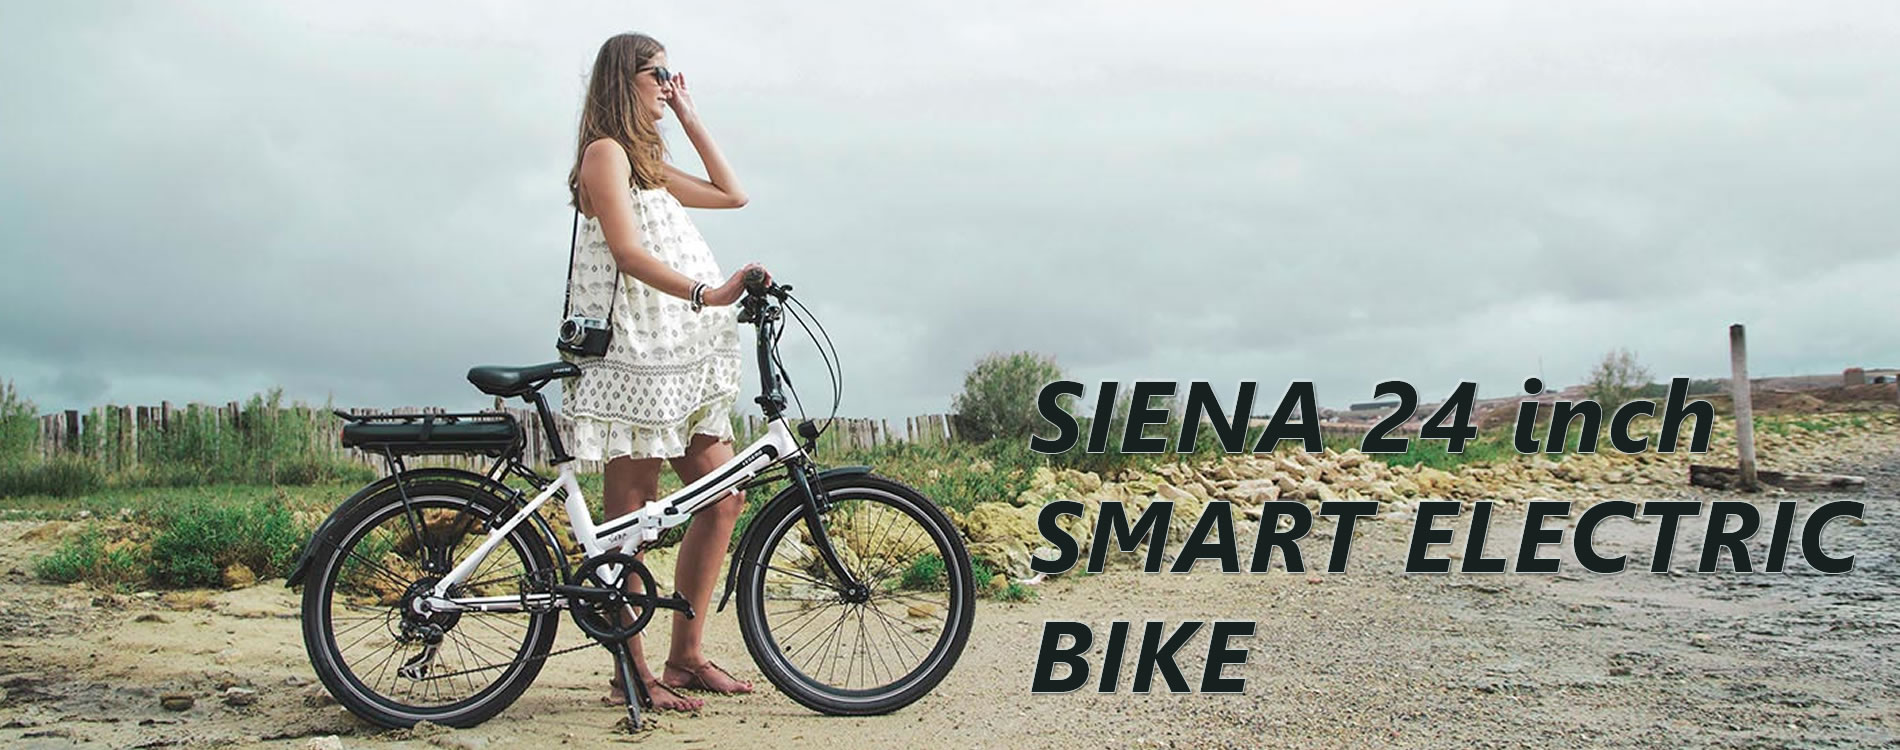 Siena Electric Smart Folding Bike - 24 inch